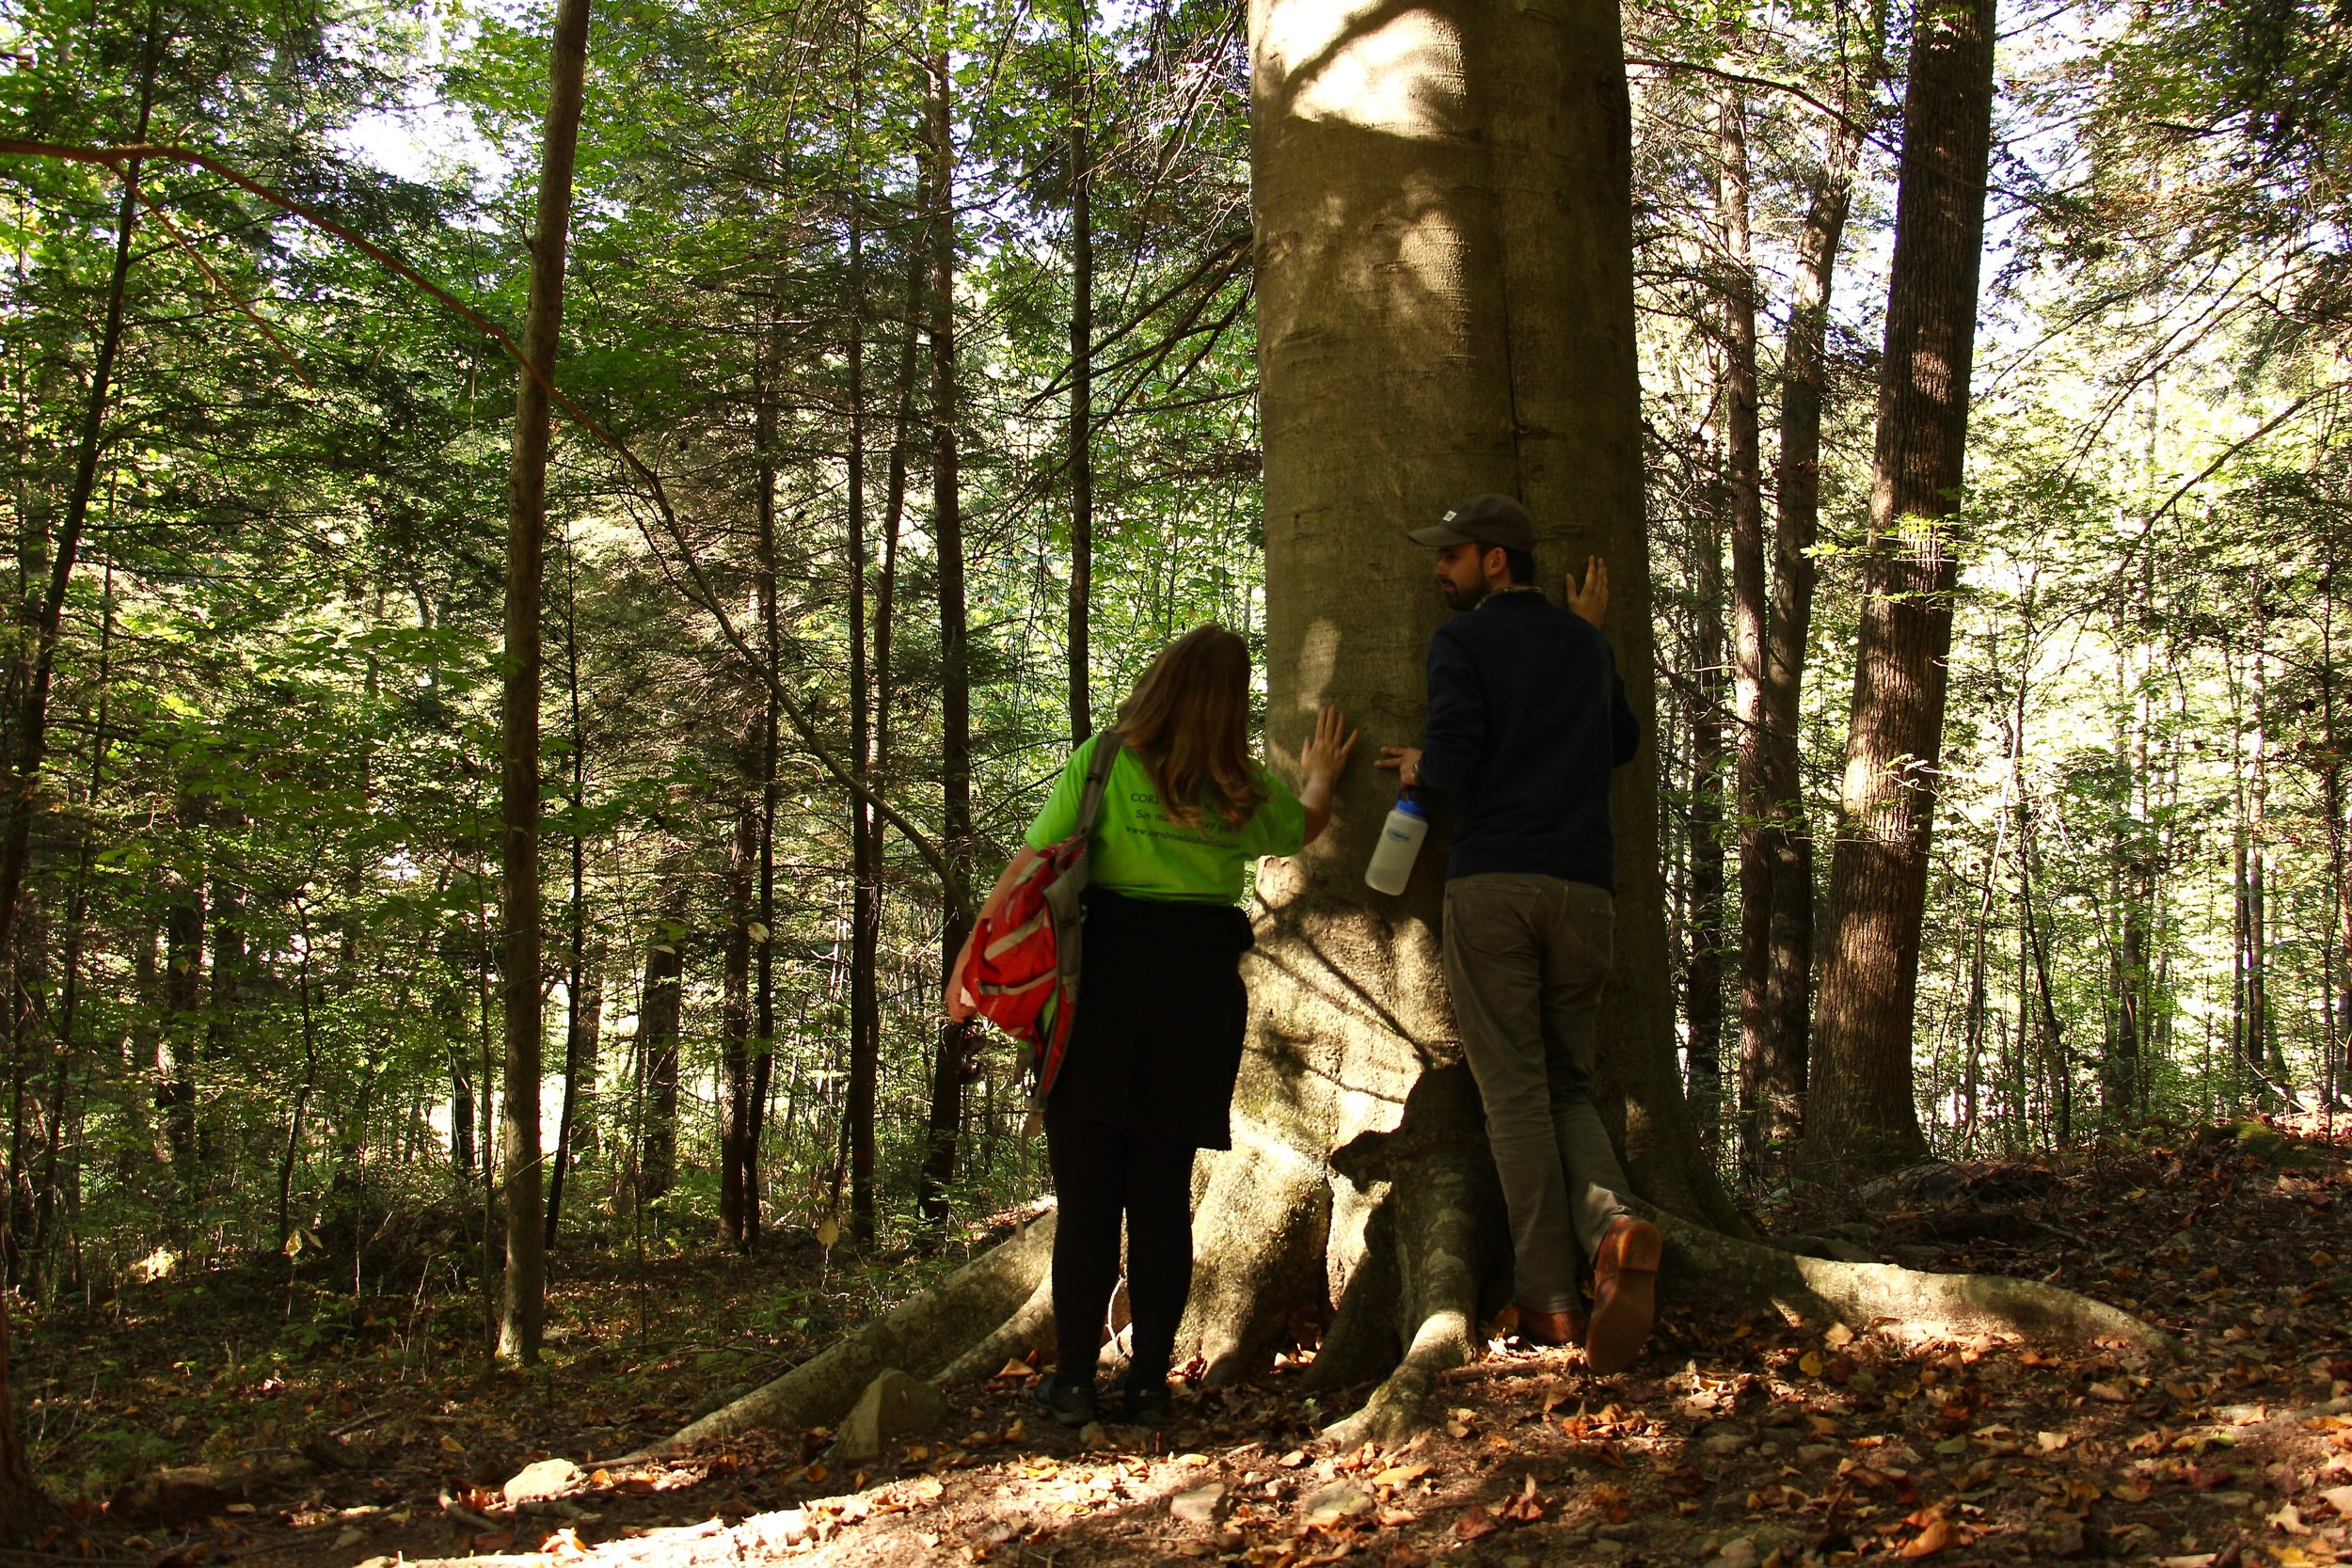 Jenny Williams and Richard Young appreciating one of the larger trees on our hike.